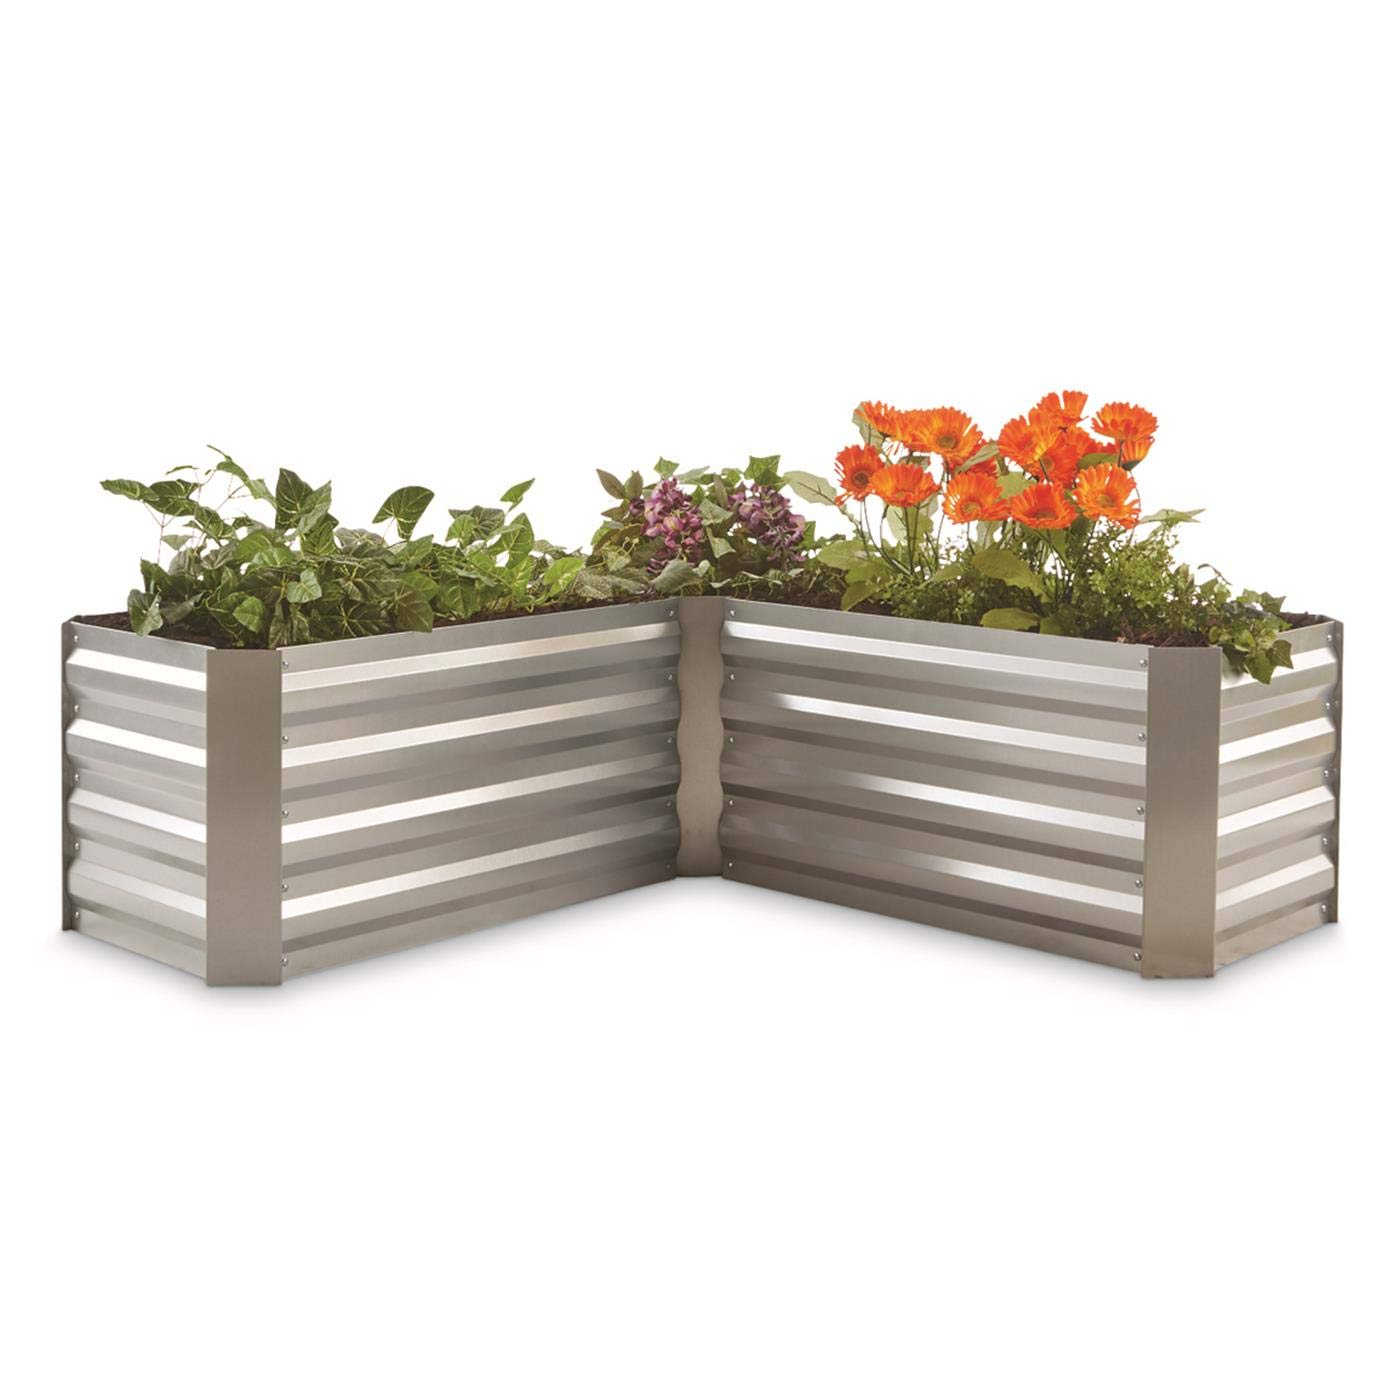 CASTLECREEK L-Shaped Galvanized Steel Planter Box